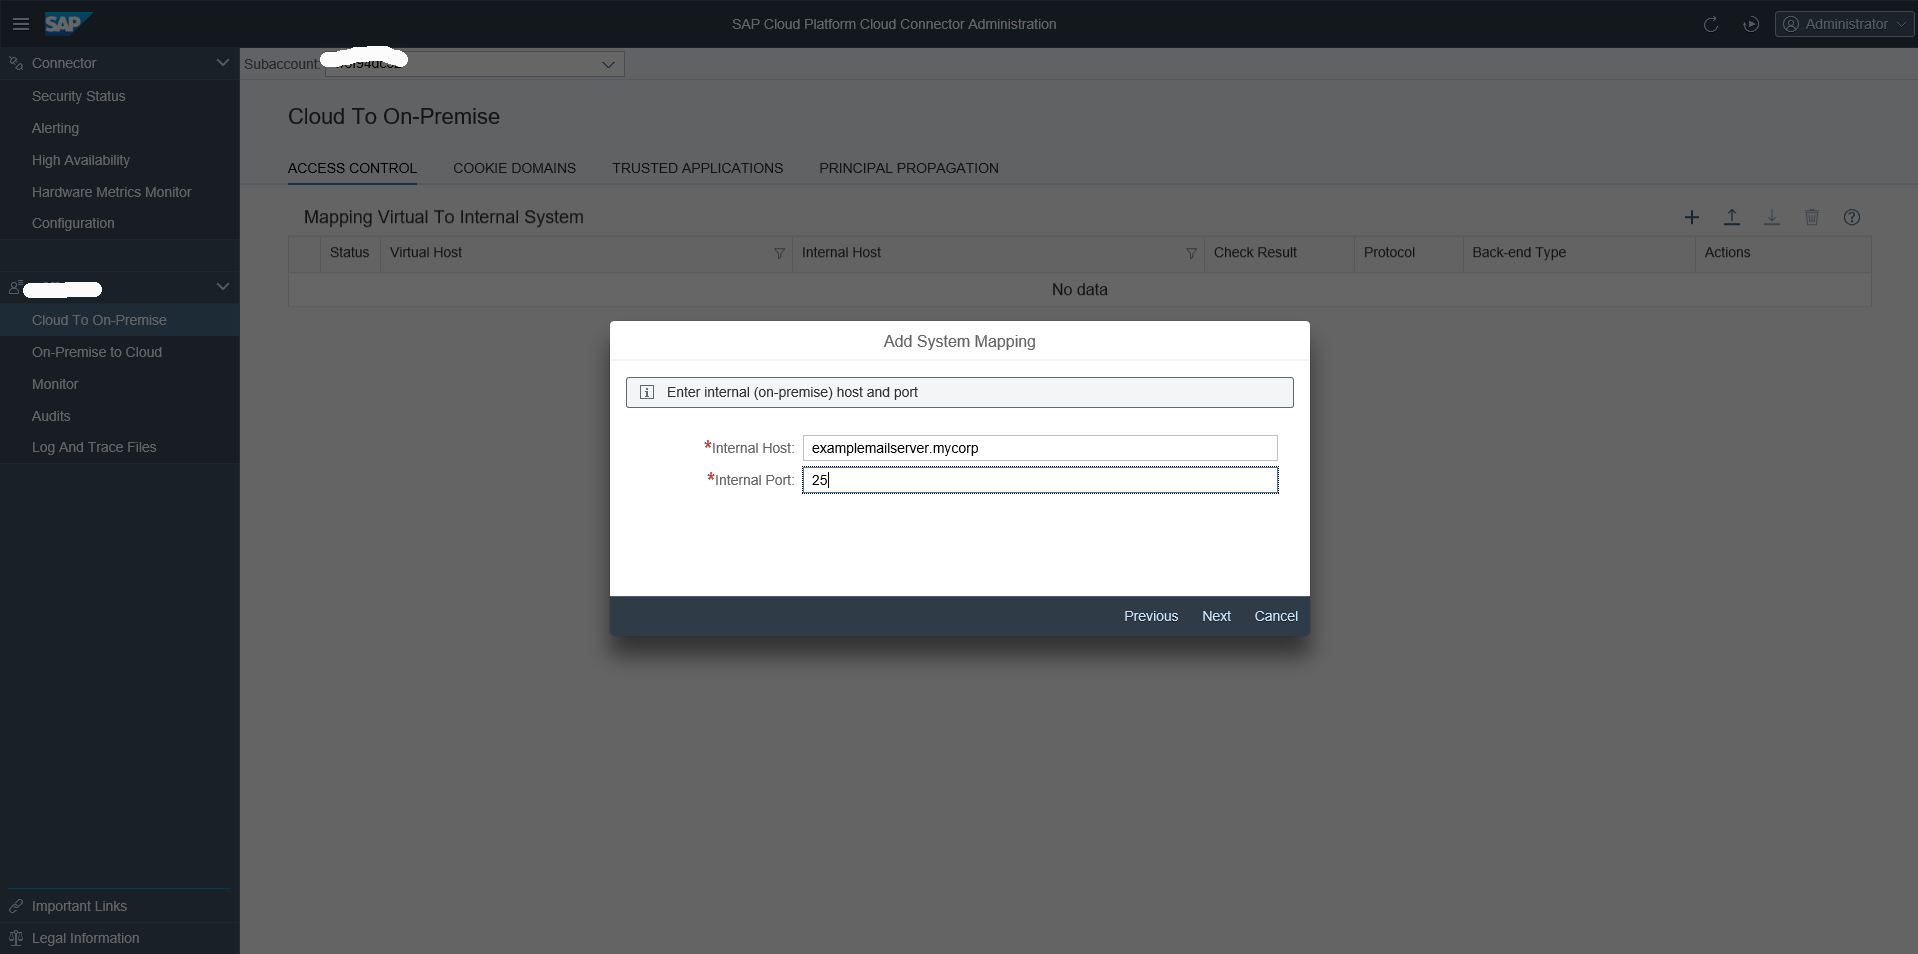 How to connect via SAP Cloud Platform Integration to my On-Premise